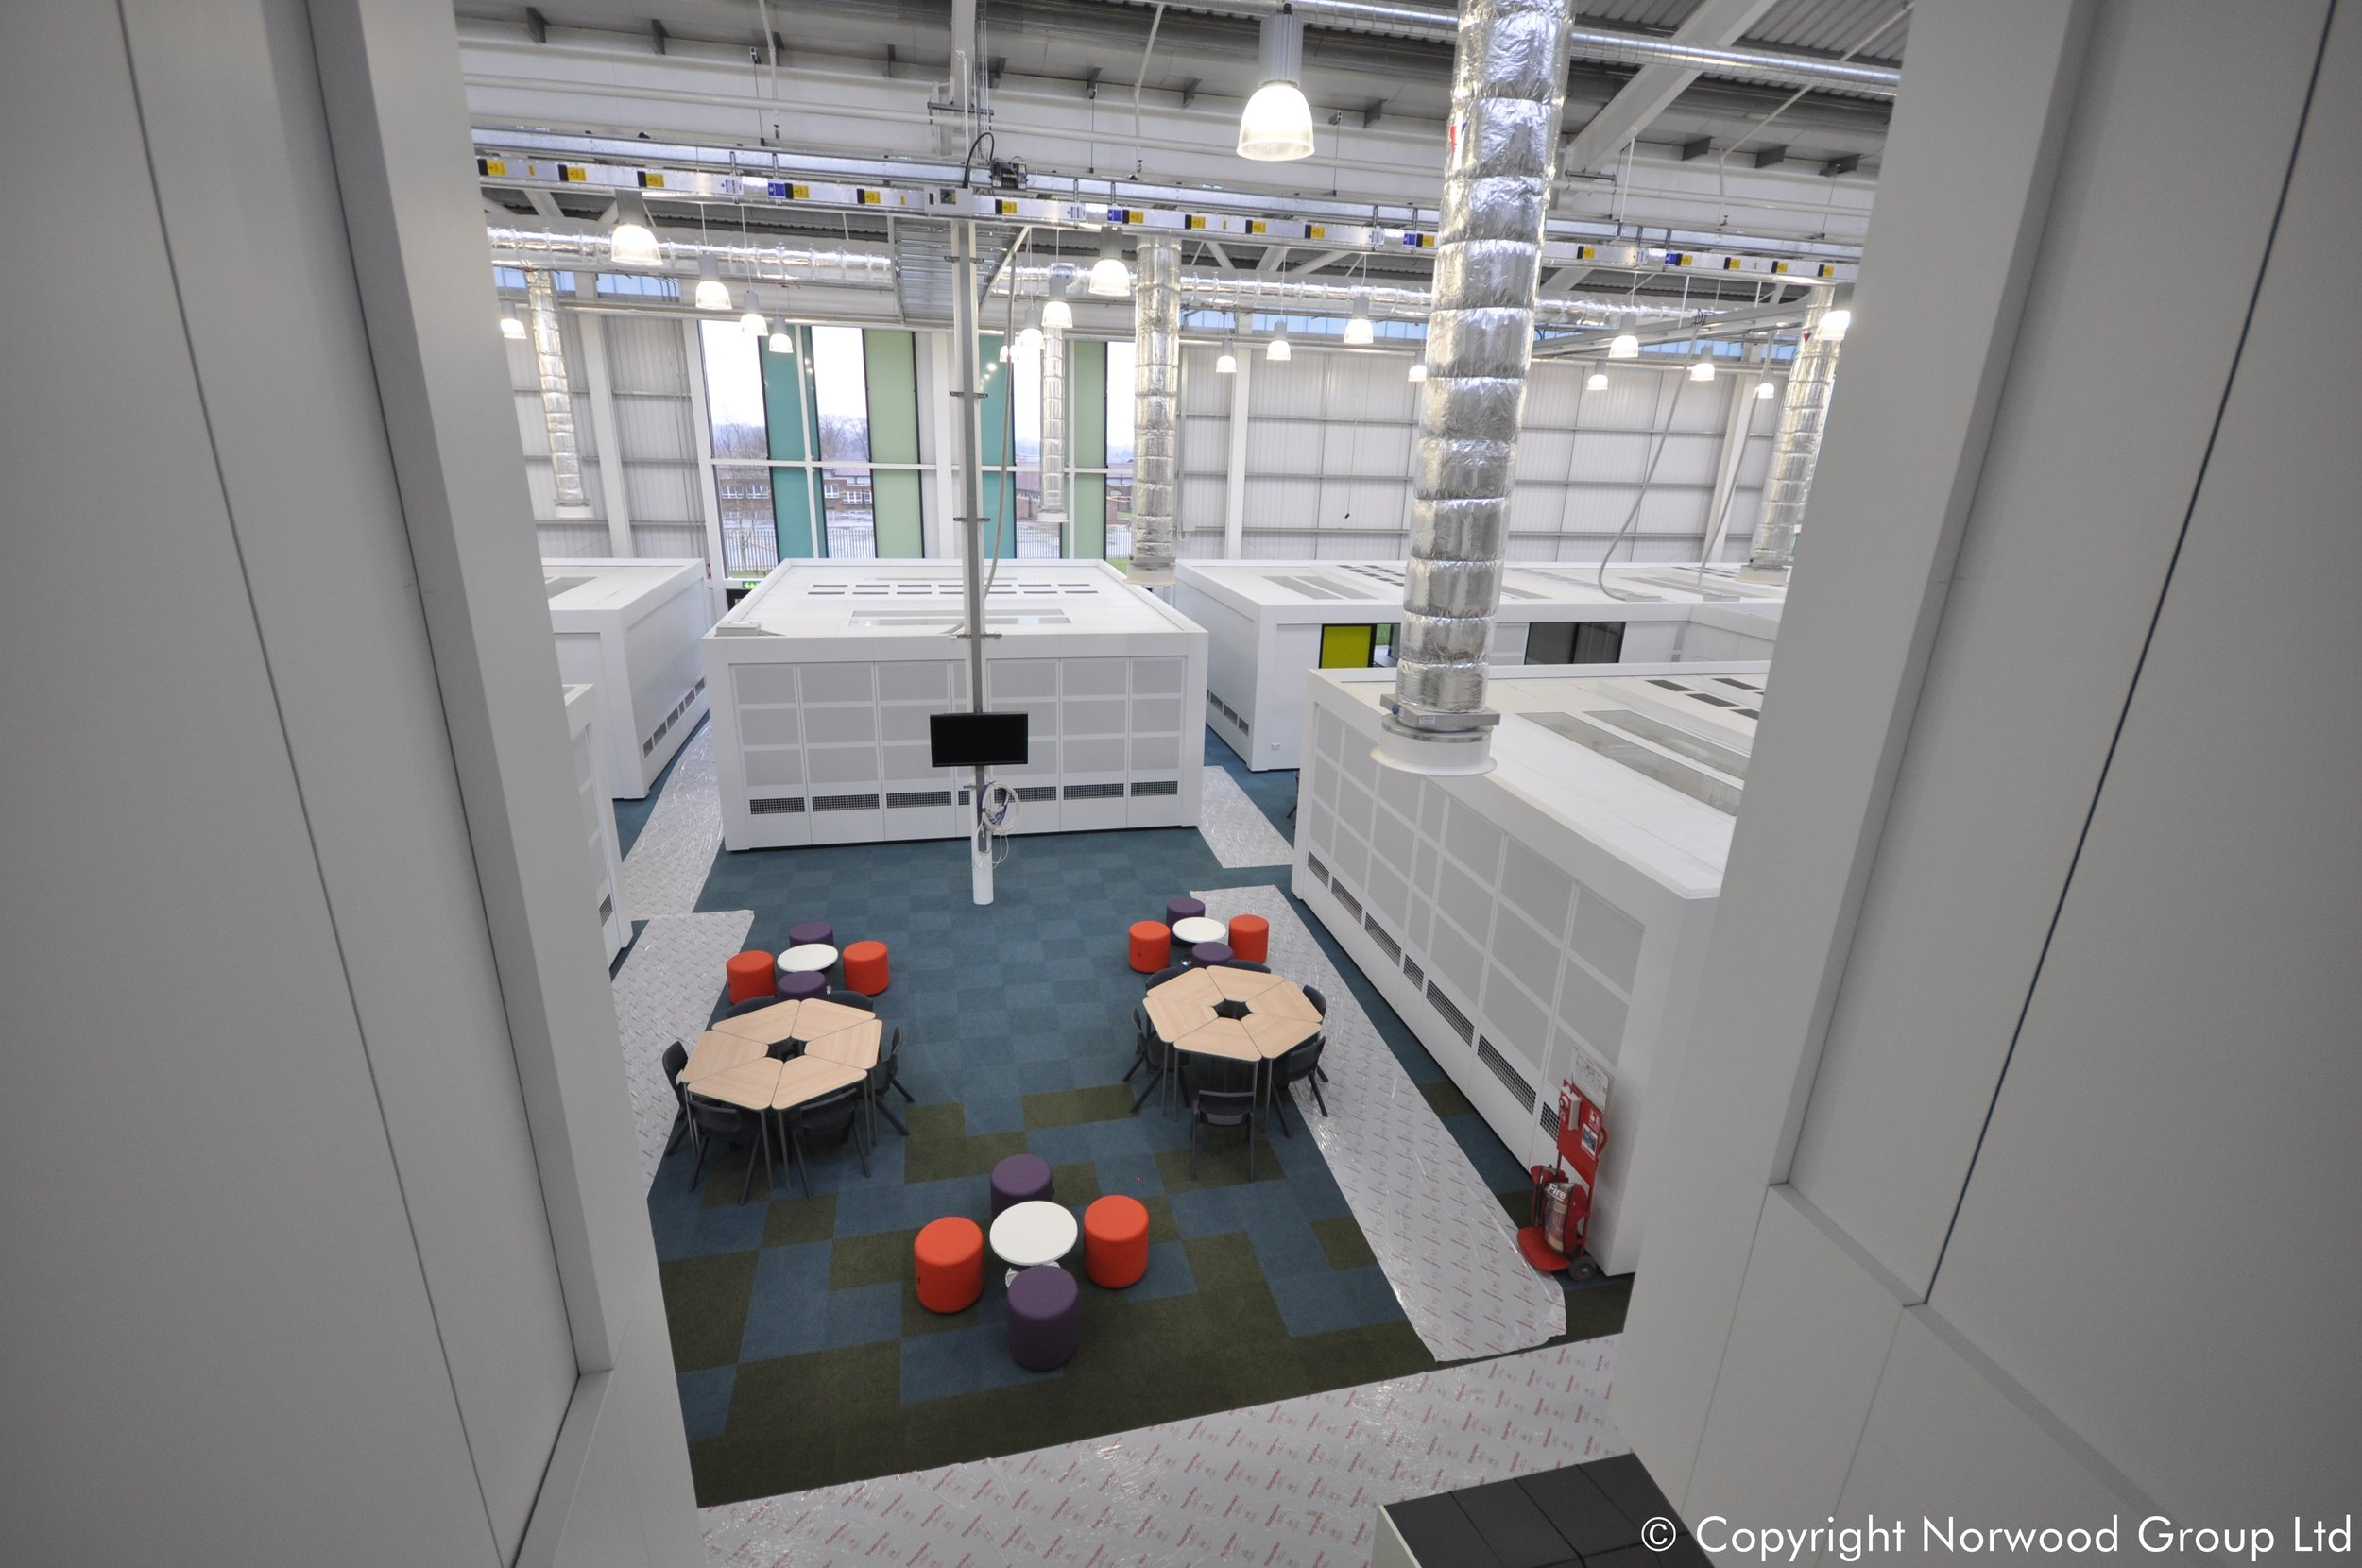 Leeds East Academy Podsolve system. Bespoek Freestanding Acoustic and Ventilated White Steel Partition Classroom Pods